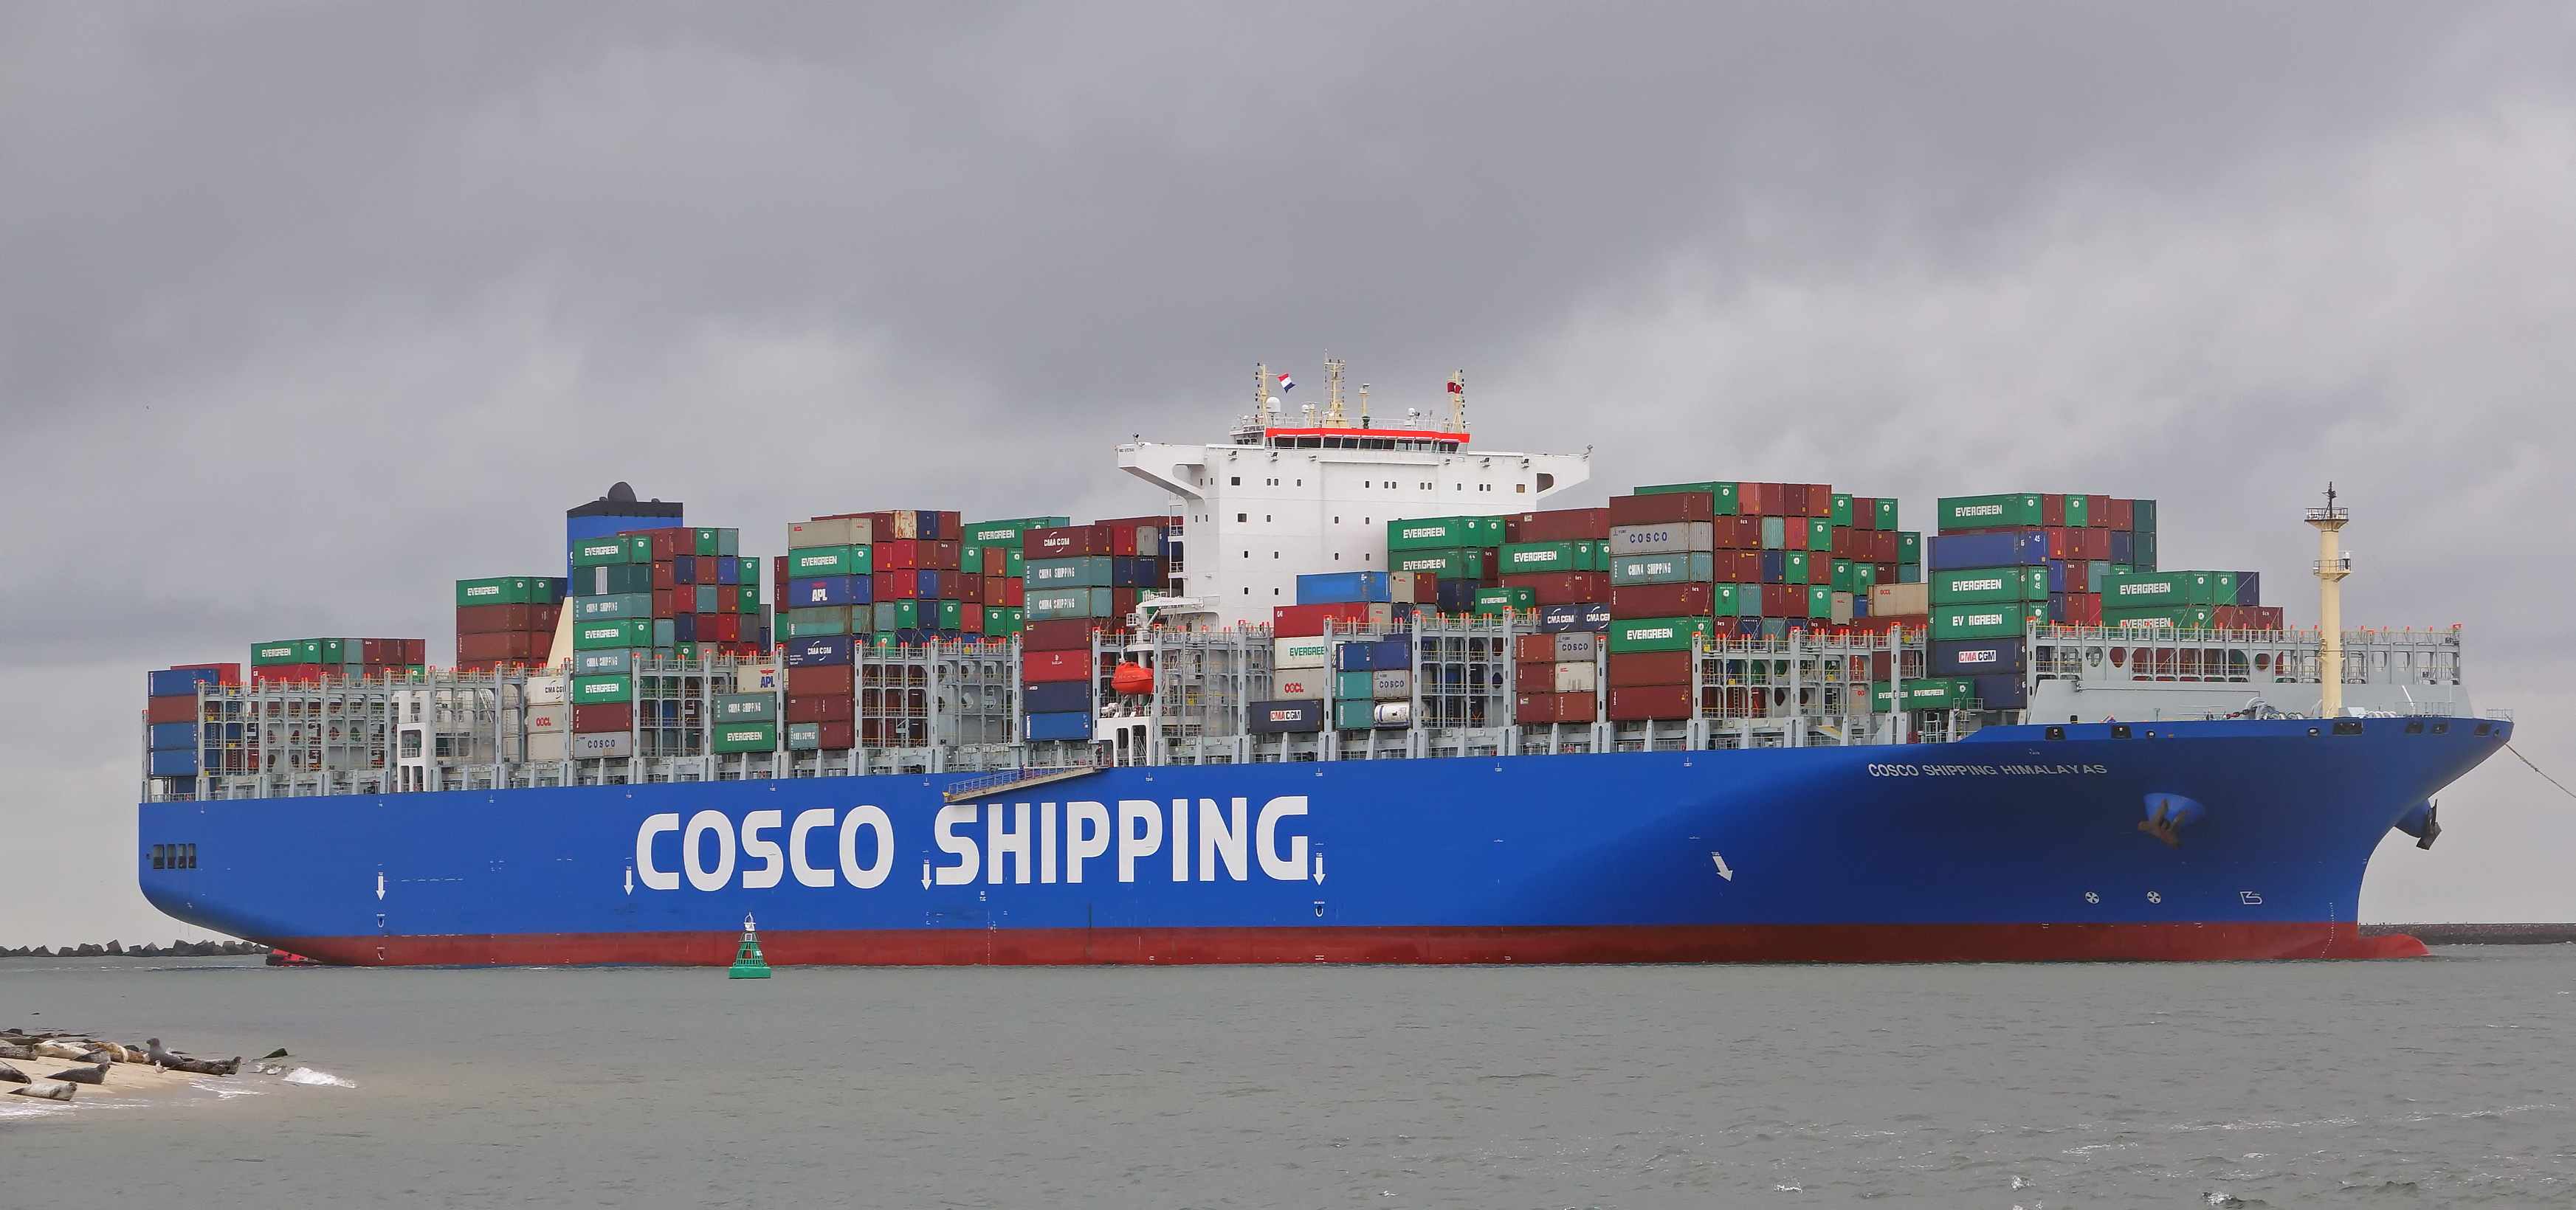 China COSCO Shipping - Wikipedia